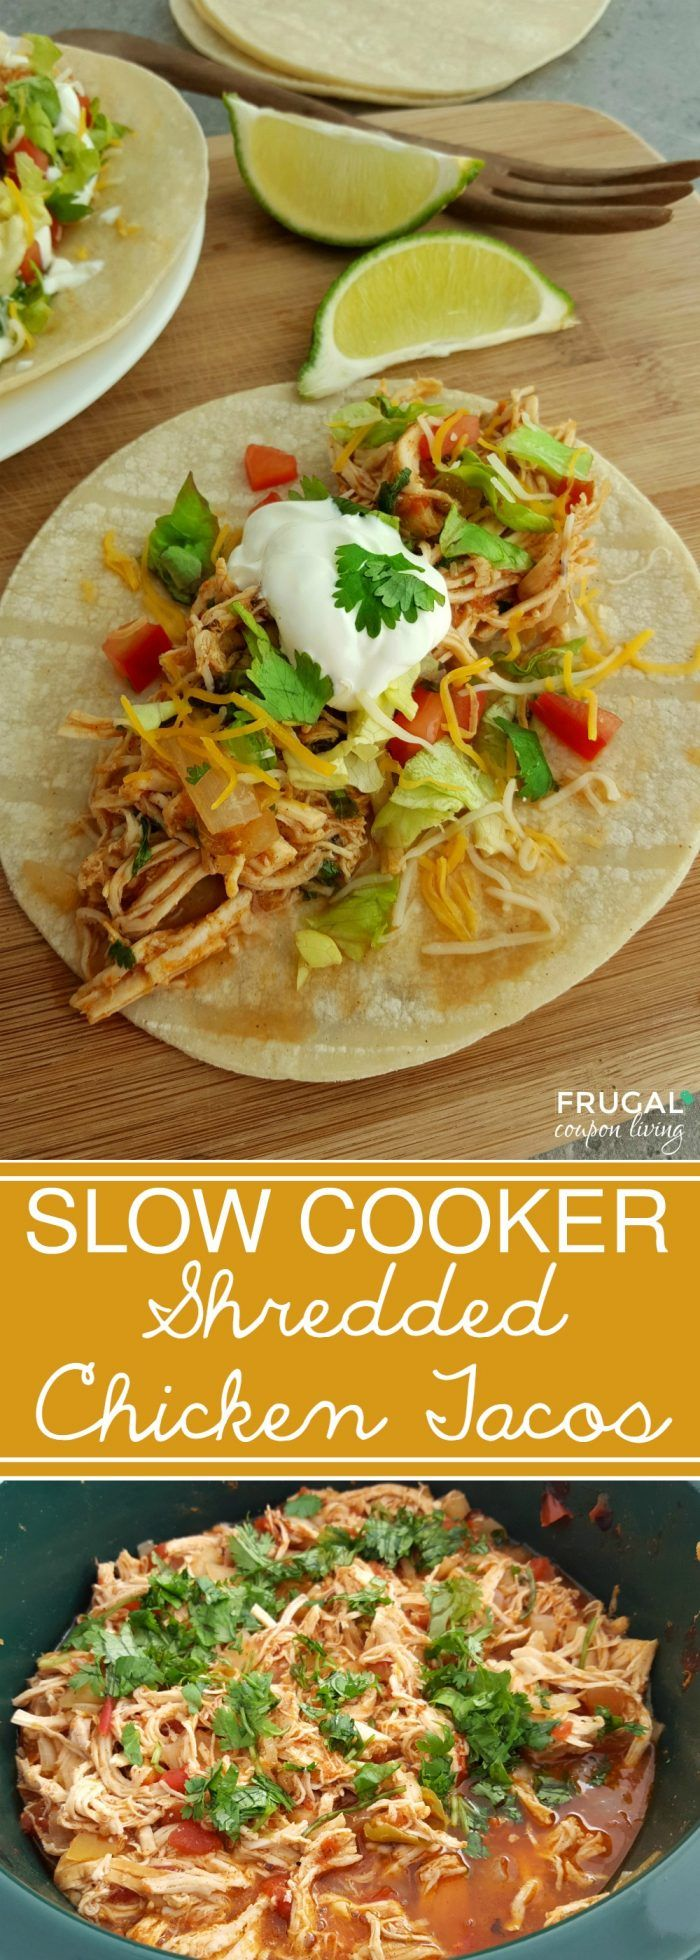 Shredded Chicken Tacos in the Slow Cooker on Frugal Coupon Living. Easy Taco Recipe for Taco Tuesday. Crockpot recipe.